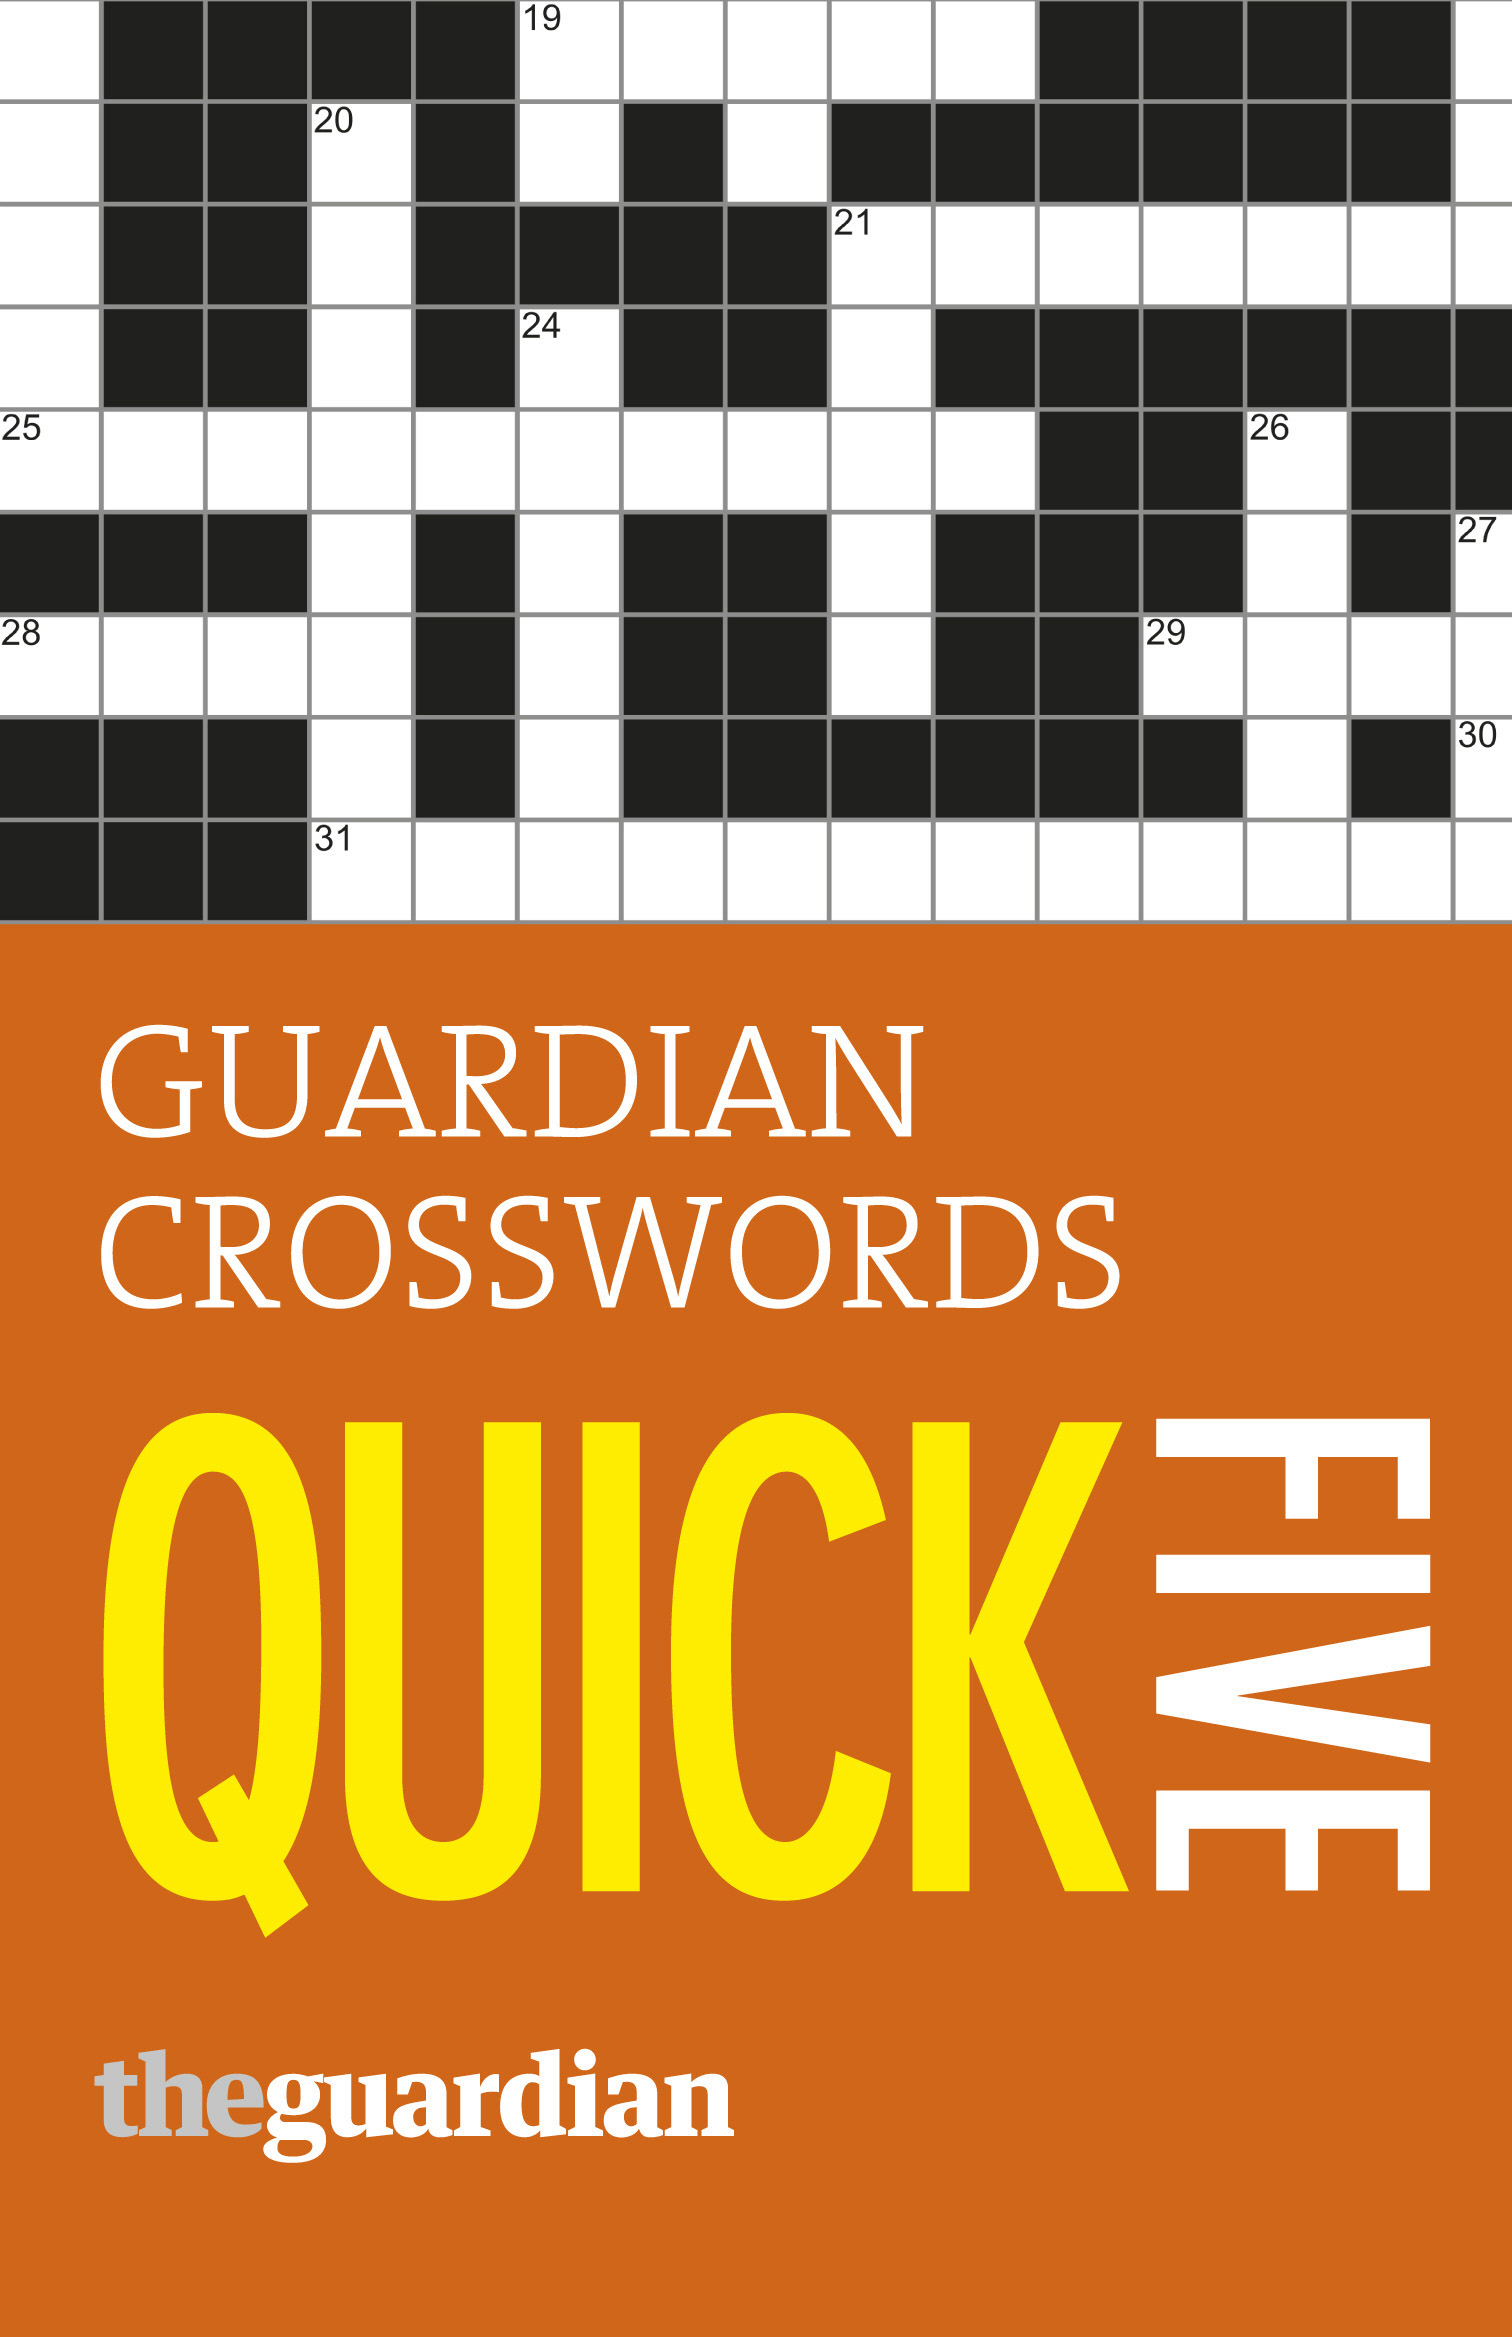 guardian quick crosswords 5 hugh stephenson ebay